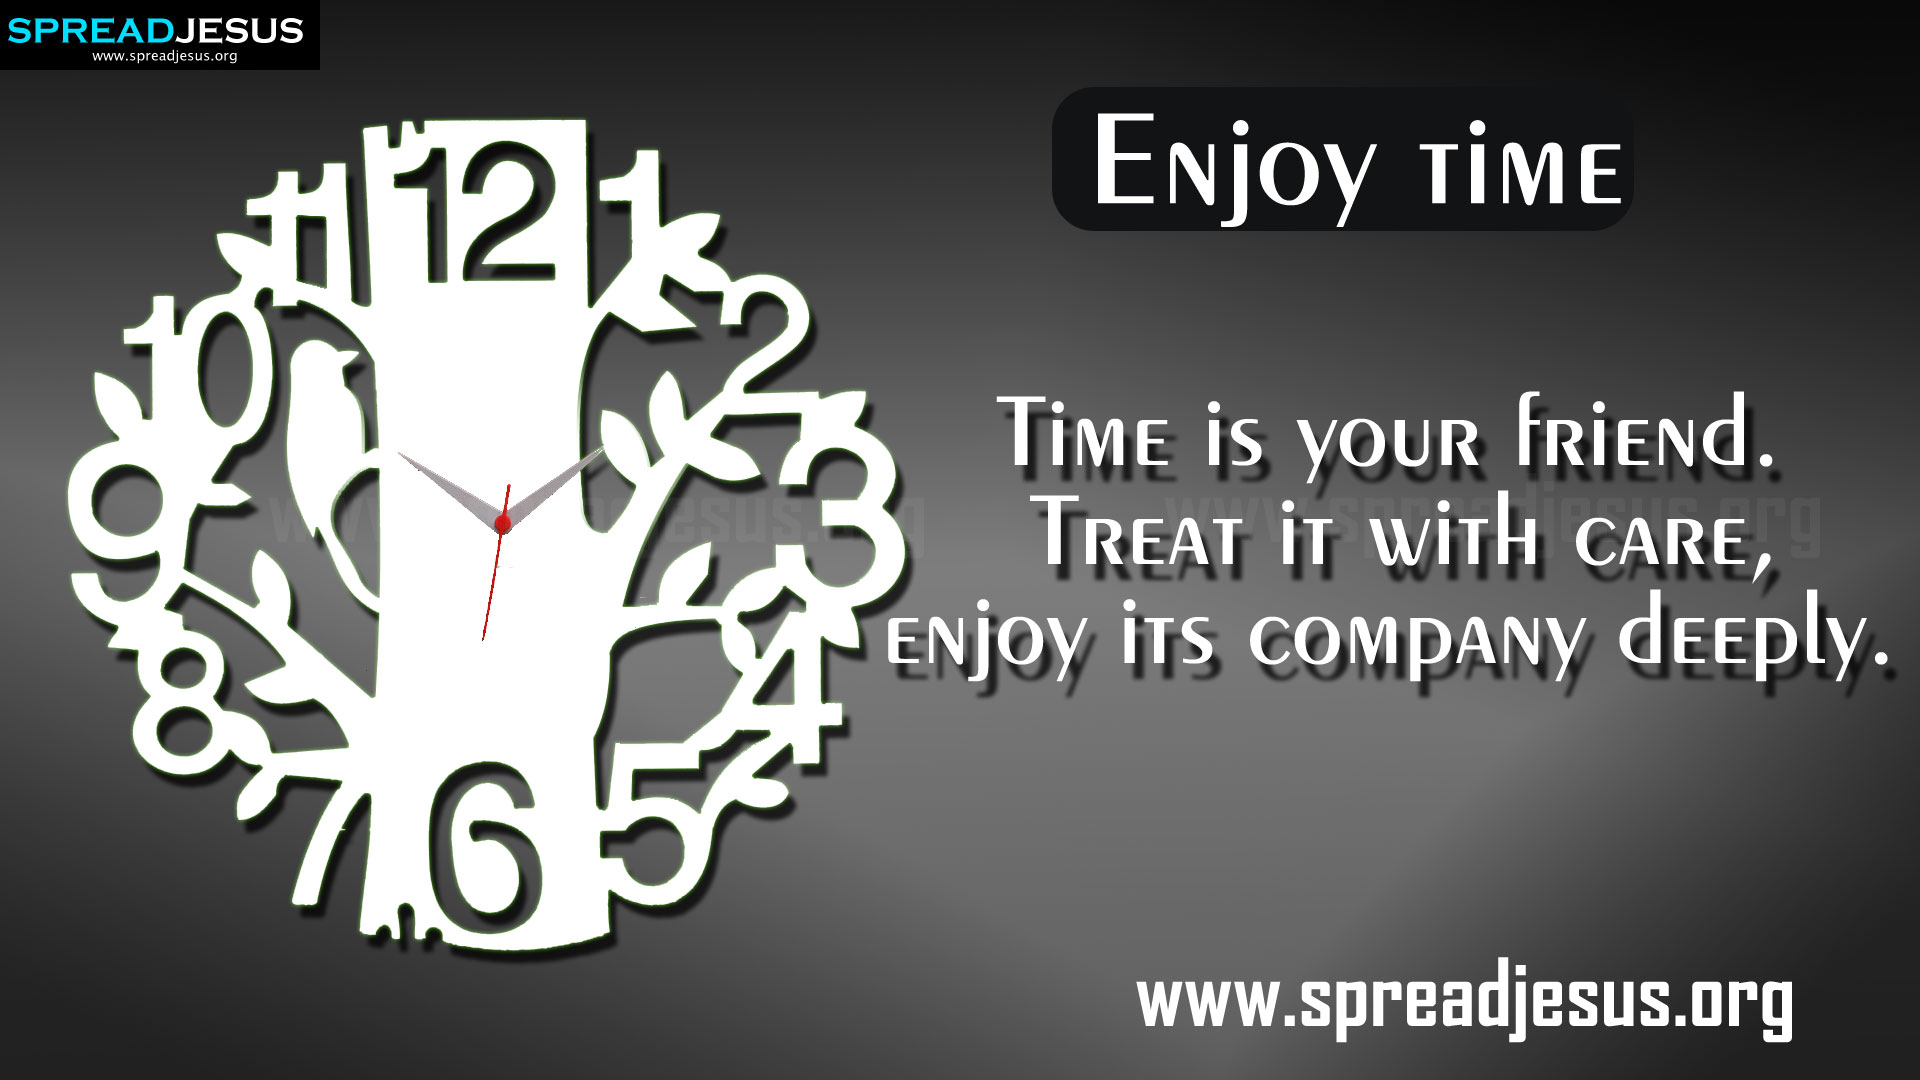 TIME MANAGEMENT QUOTES HD-WALLPAPERS FREE DOWNLOAD Enjoy time —Time is your friend. Treat it with care, enjoy its company deeply.